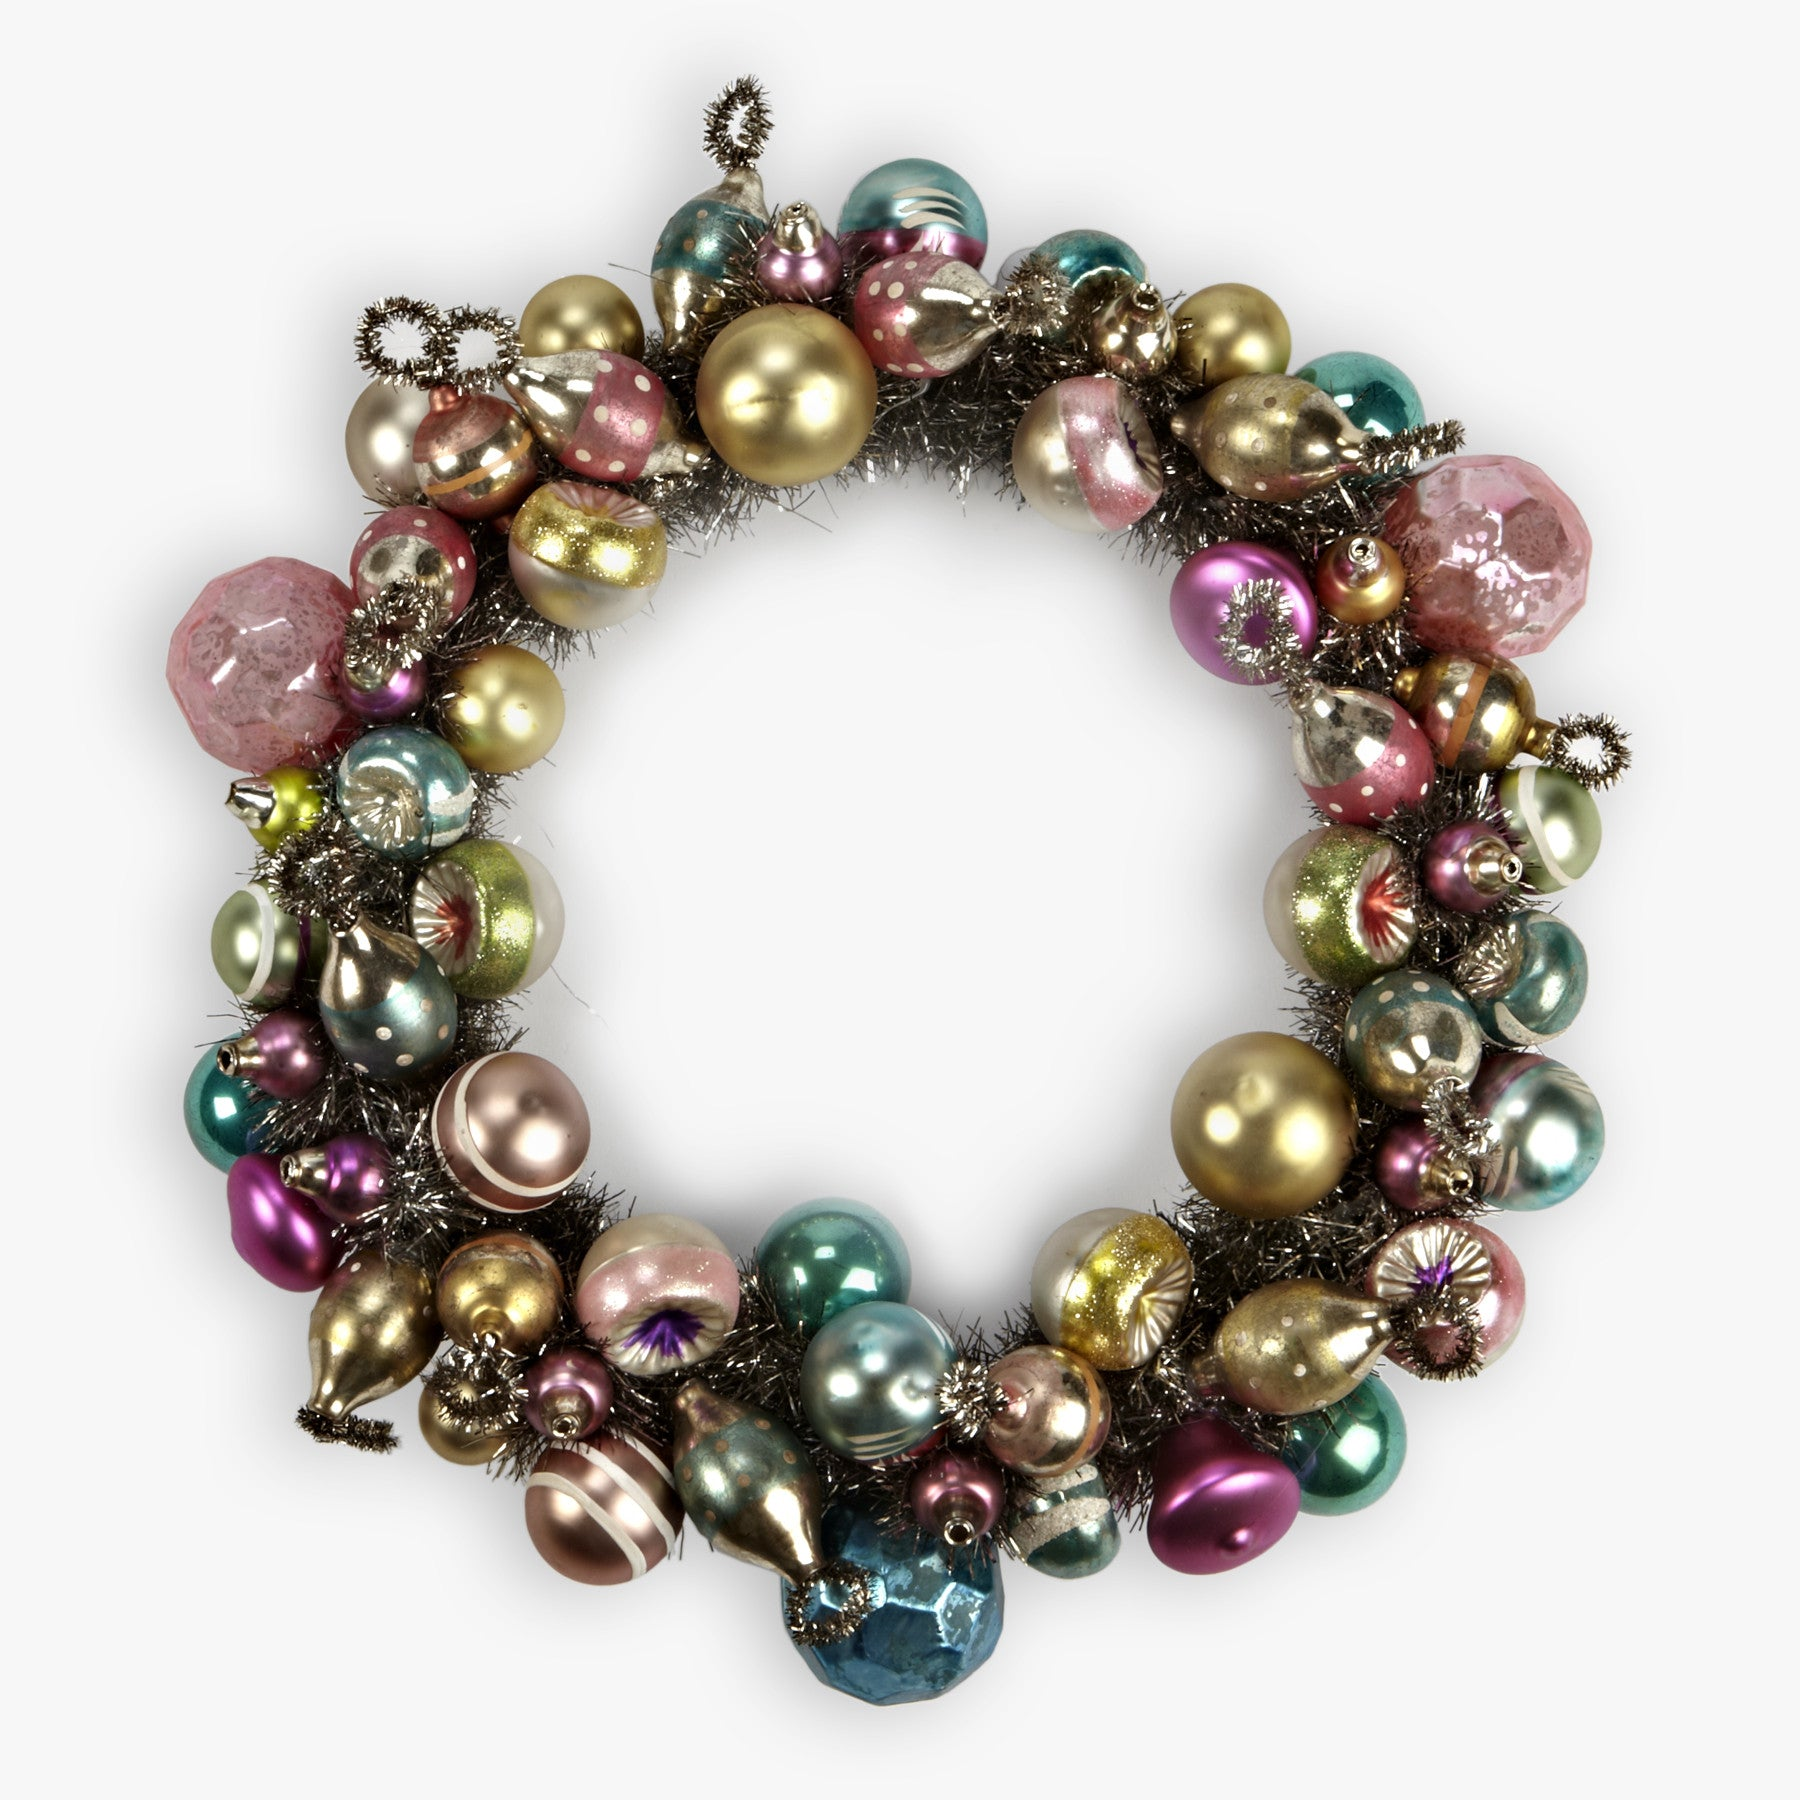 Vintage Glass Ornament and Tinsel Wreath